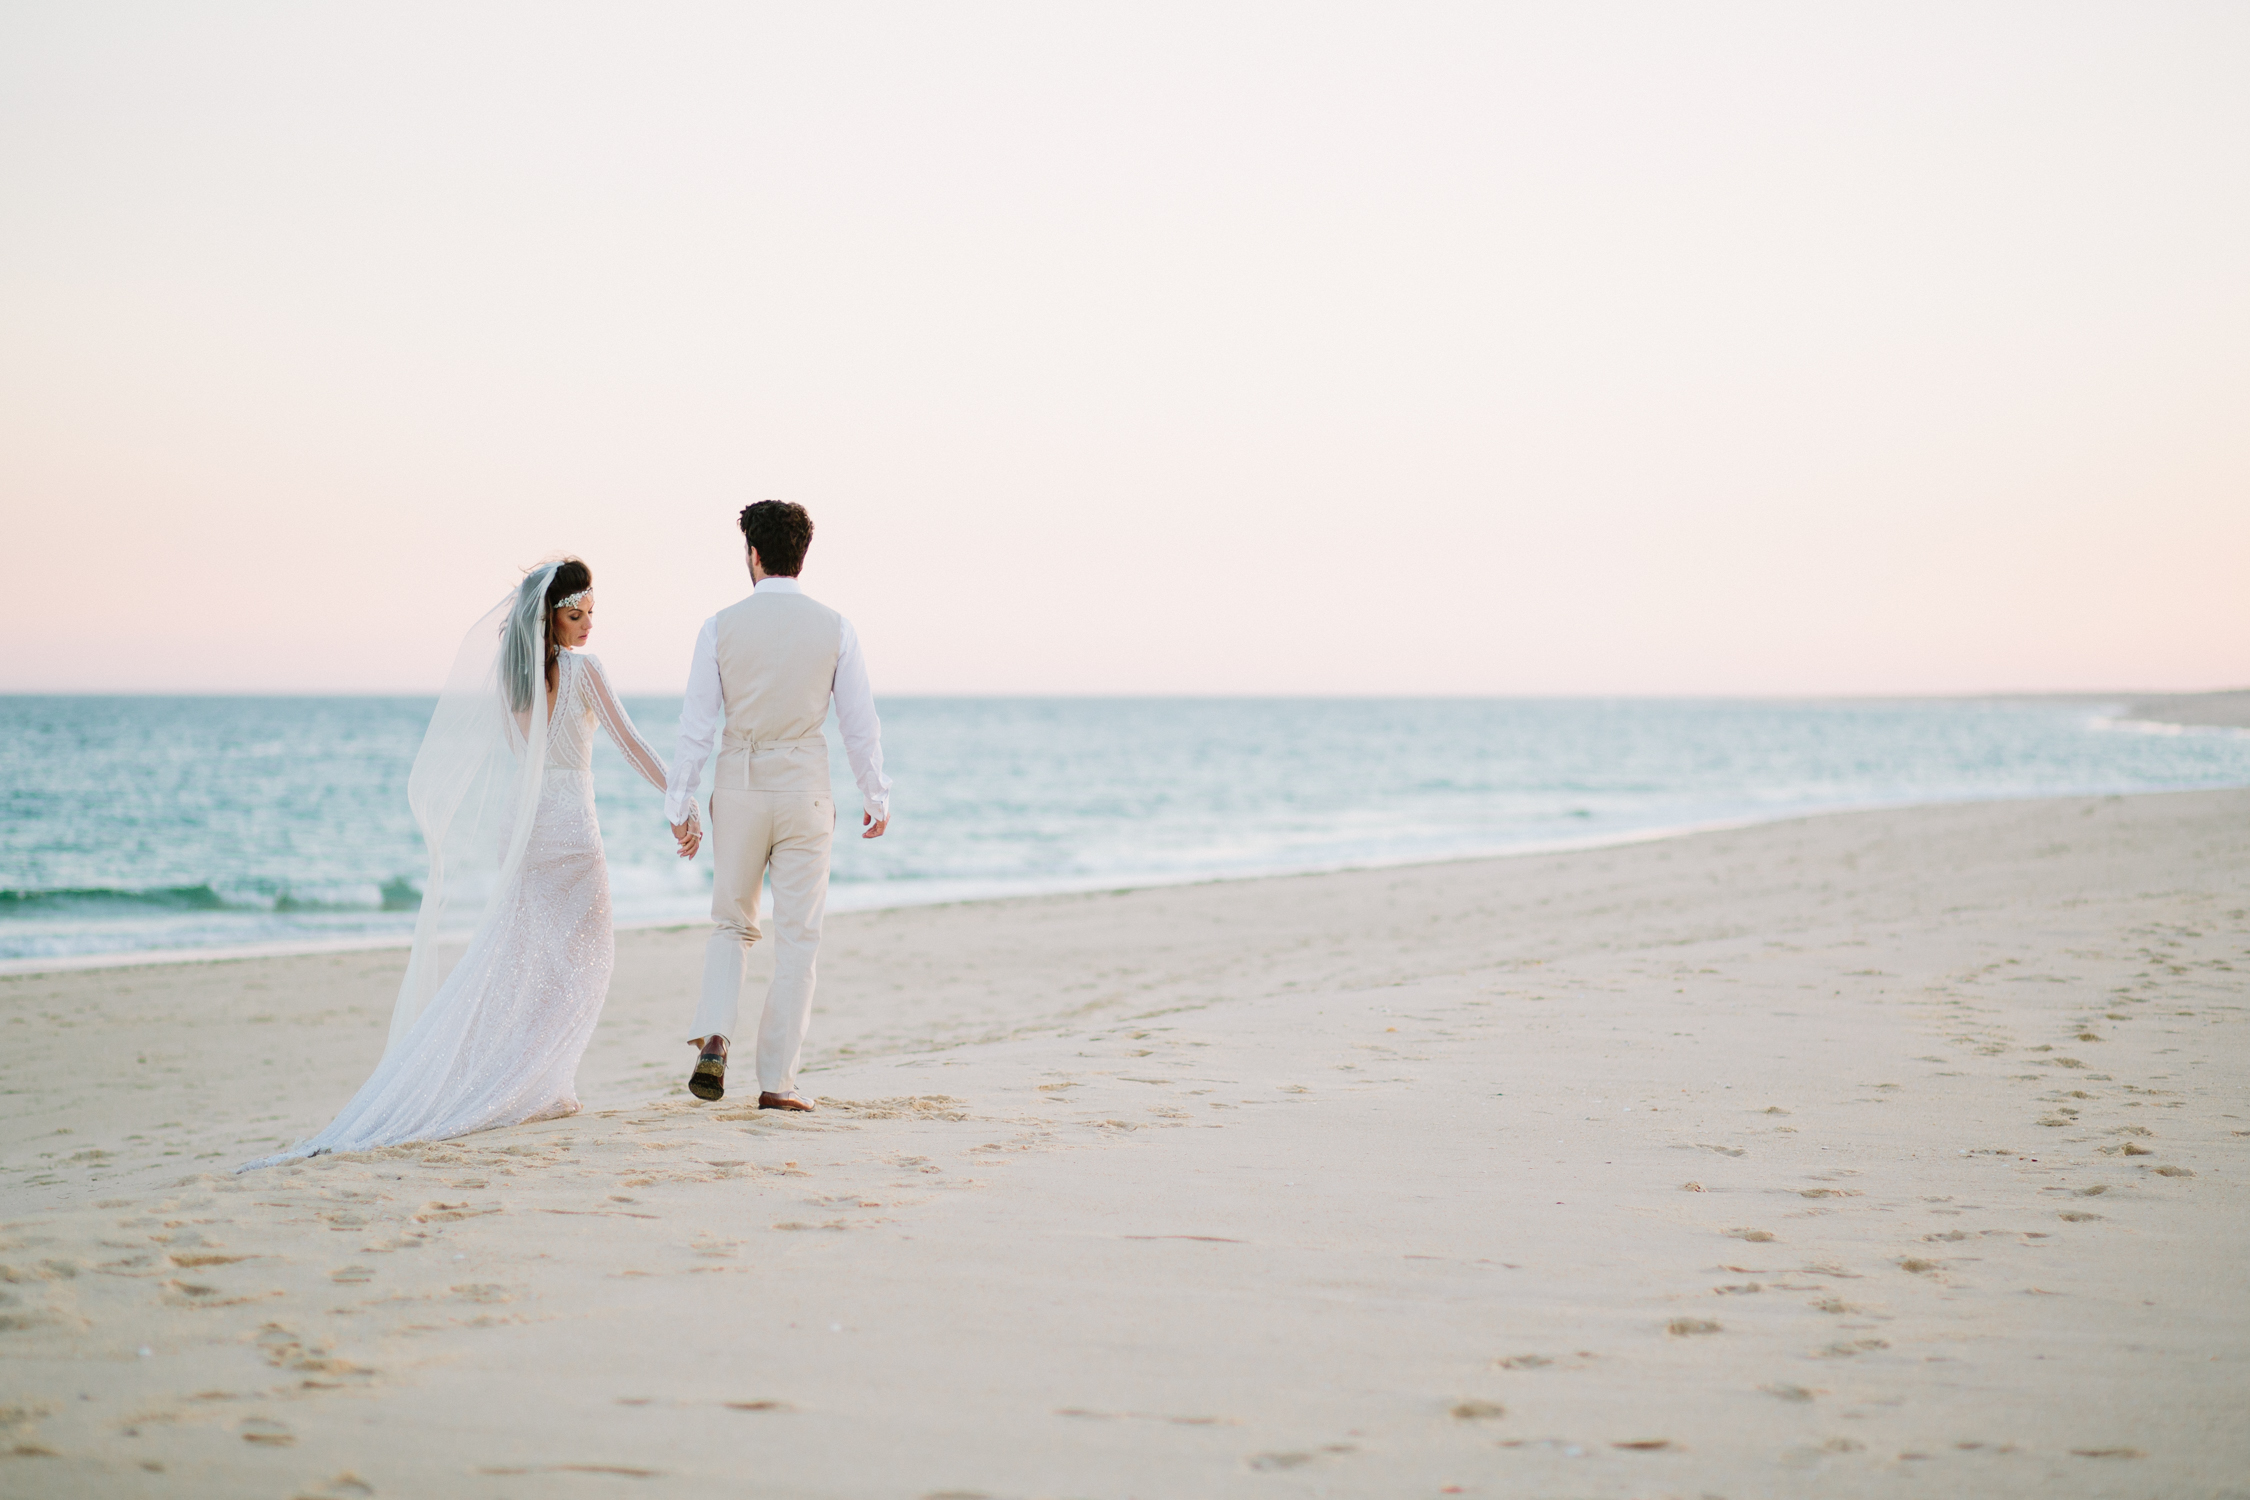 Fine Art Destination Wedding Photographer based in Cheshire in the UK featuring bride and groom portraits on the beach.